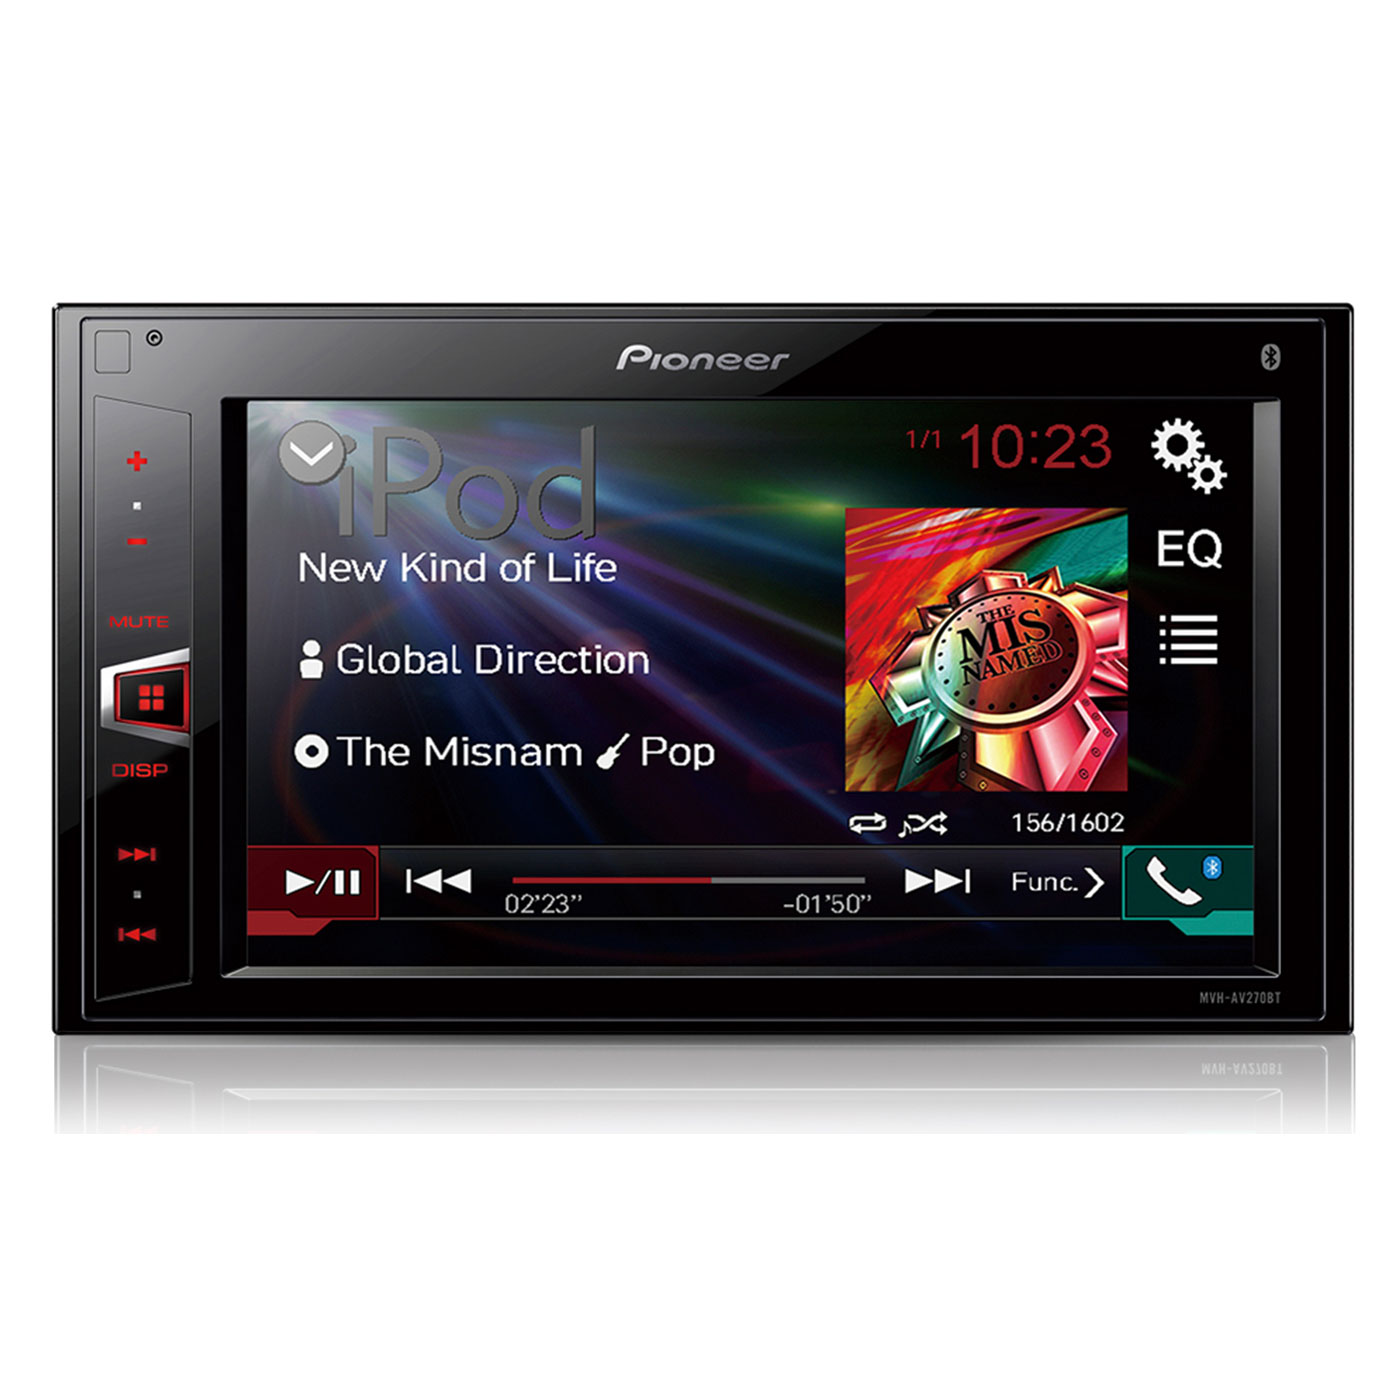 pioneer avh 288bt qual formato de video subwoofer wiring diagrams understand ohm s law mvh av270bt autoradio sur ldlc